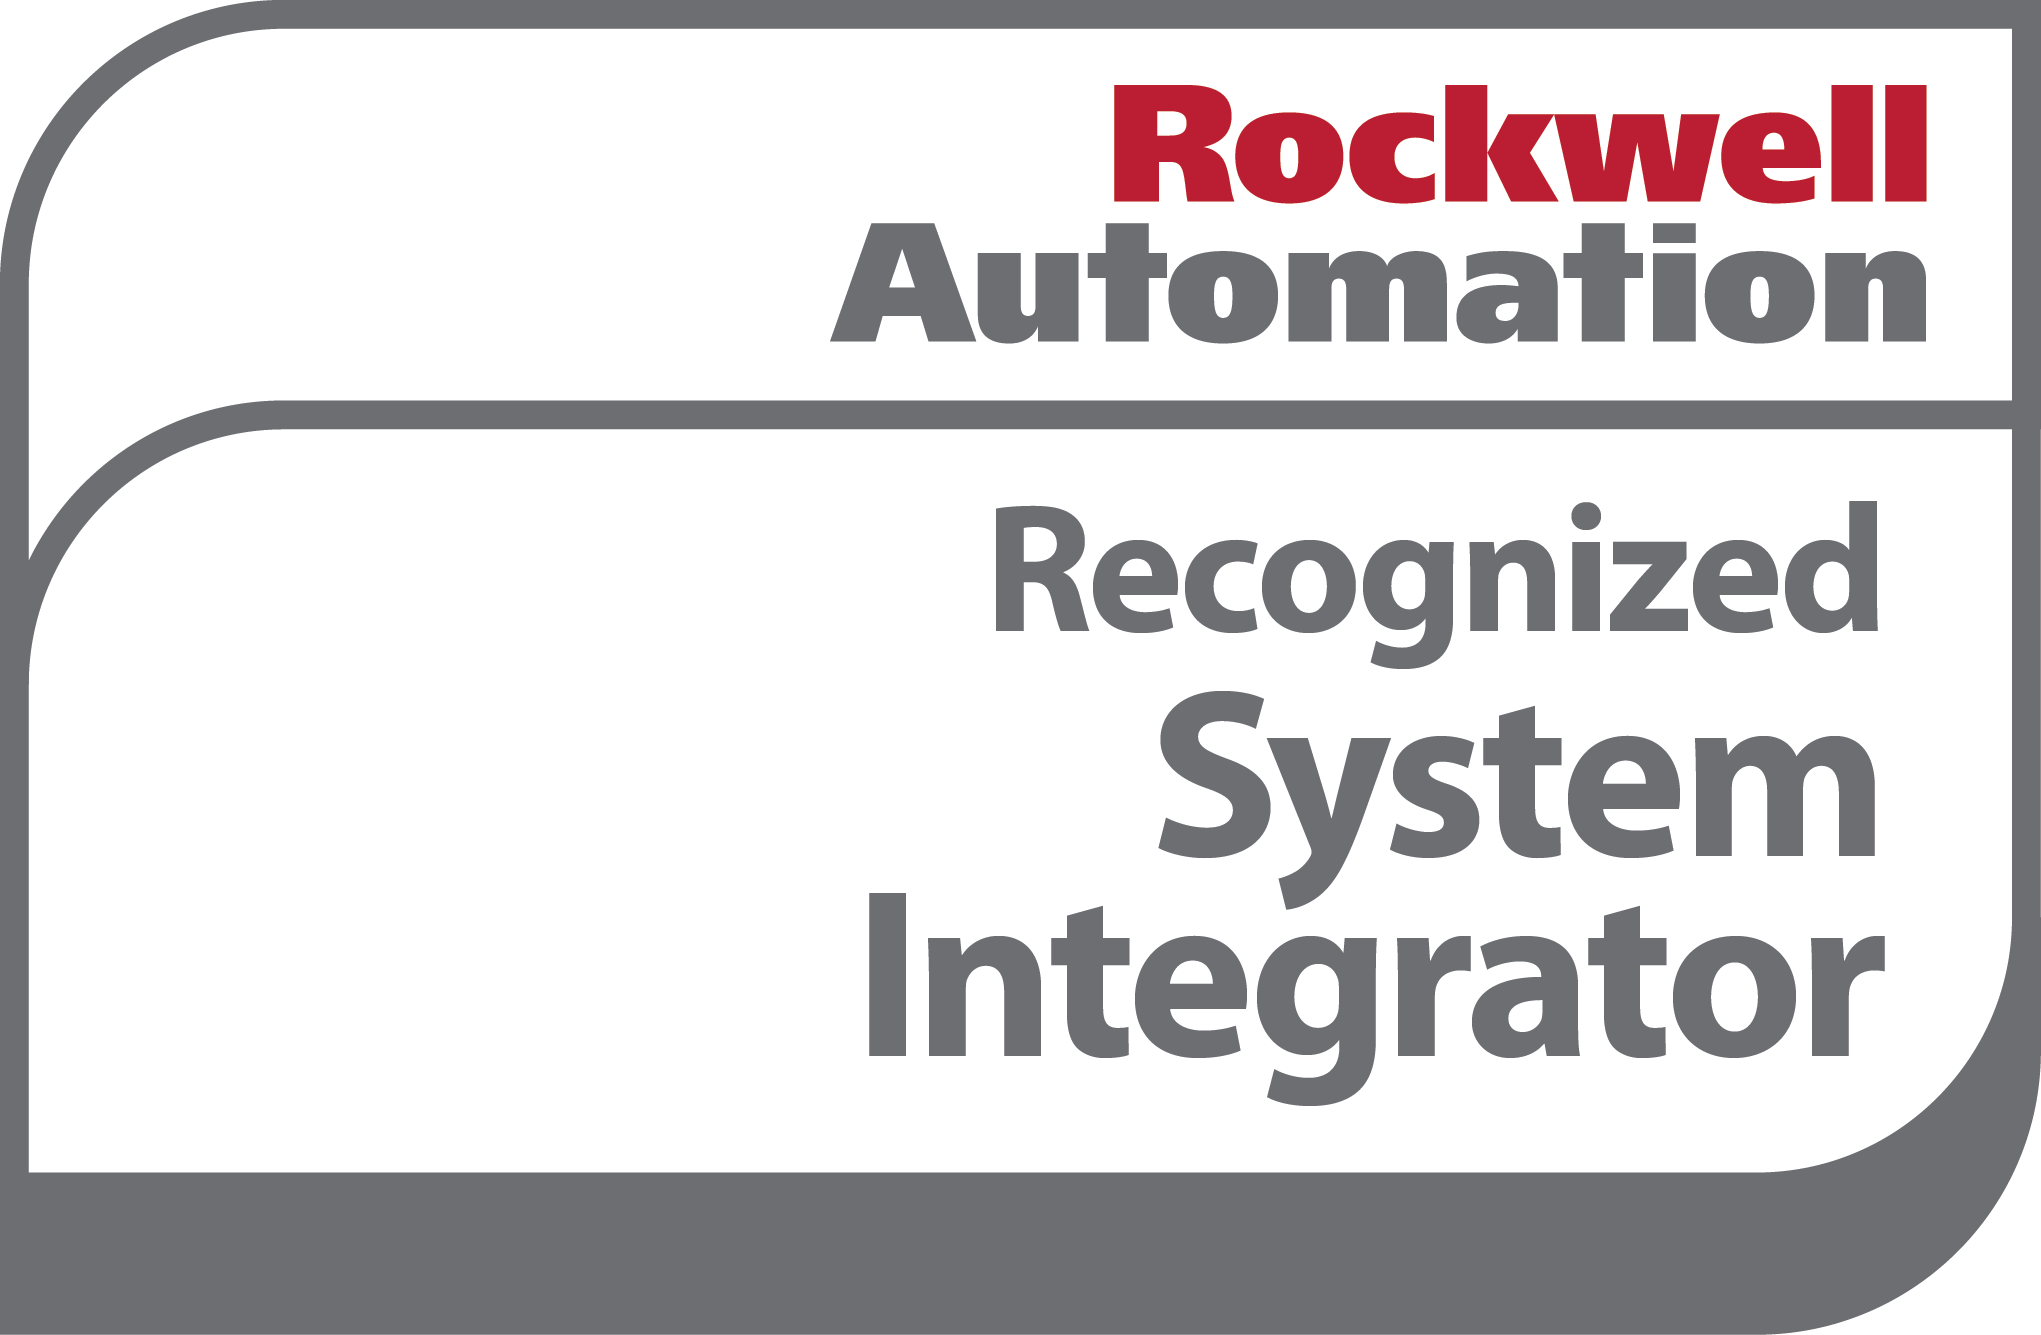 Applied Manufacturing Technologies Rockwell Automation Recognized System Integrator logo